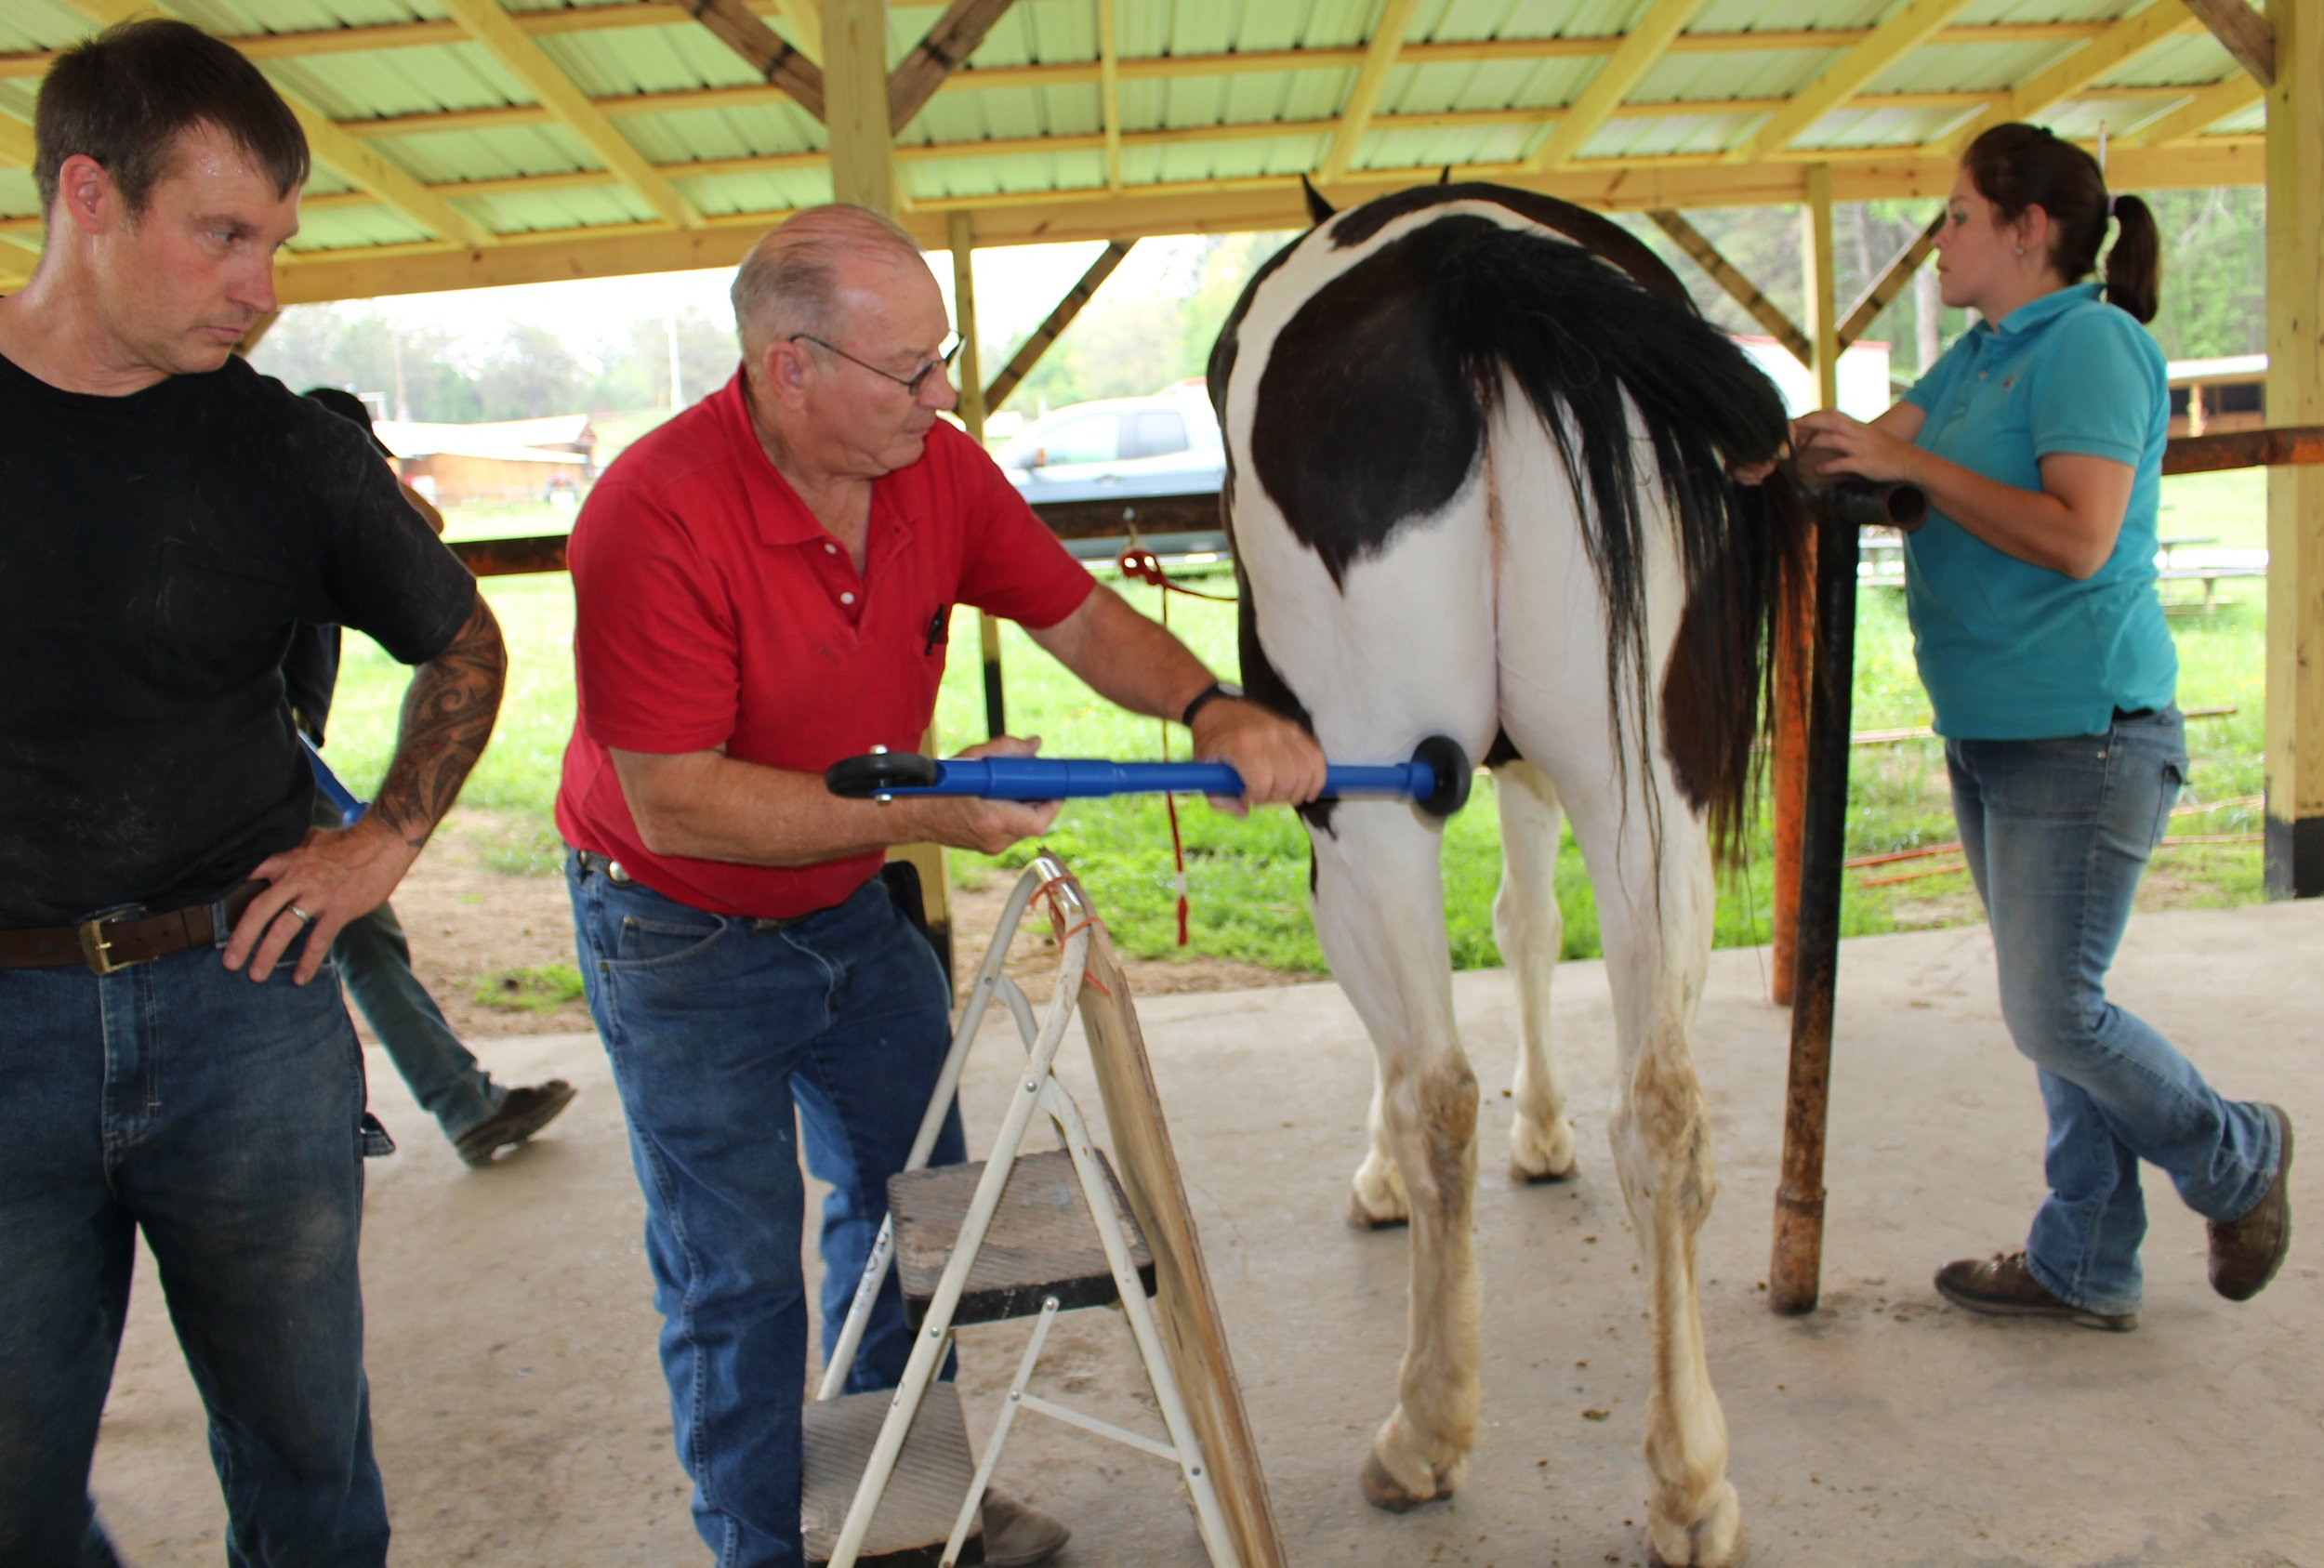 Dan Marcum EFT Instructor with Farriers during a course demonstrating his patented D-Stressor Tools.